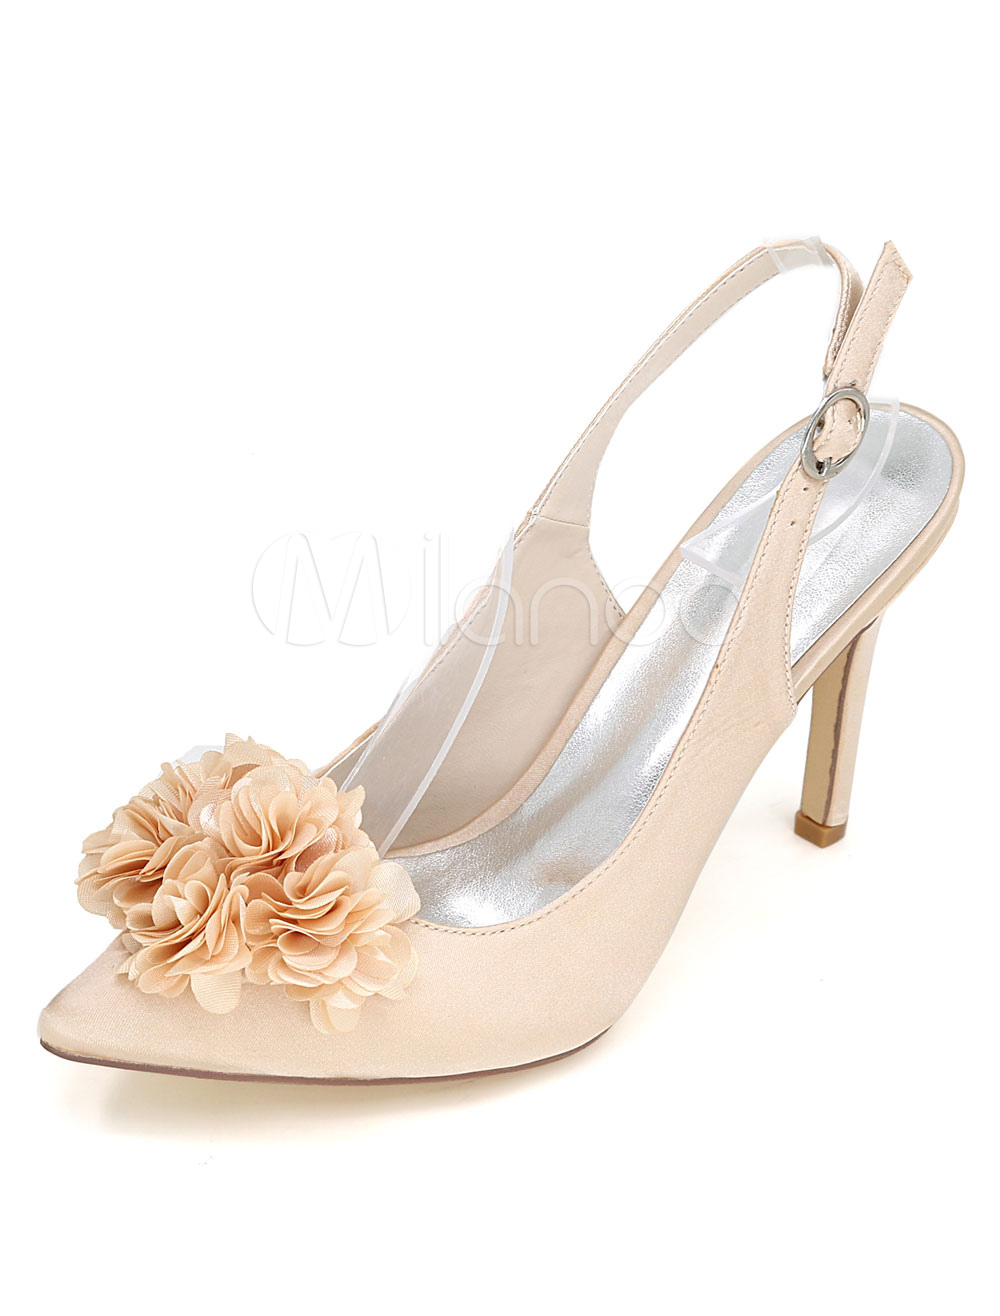 Buy Champagne Wedding Shoes High Heel Pumps Pointed Toe Slingbacks Flower Satin Bridal Shoes for $45.59 in Milanoo store